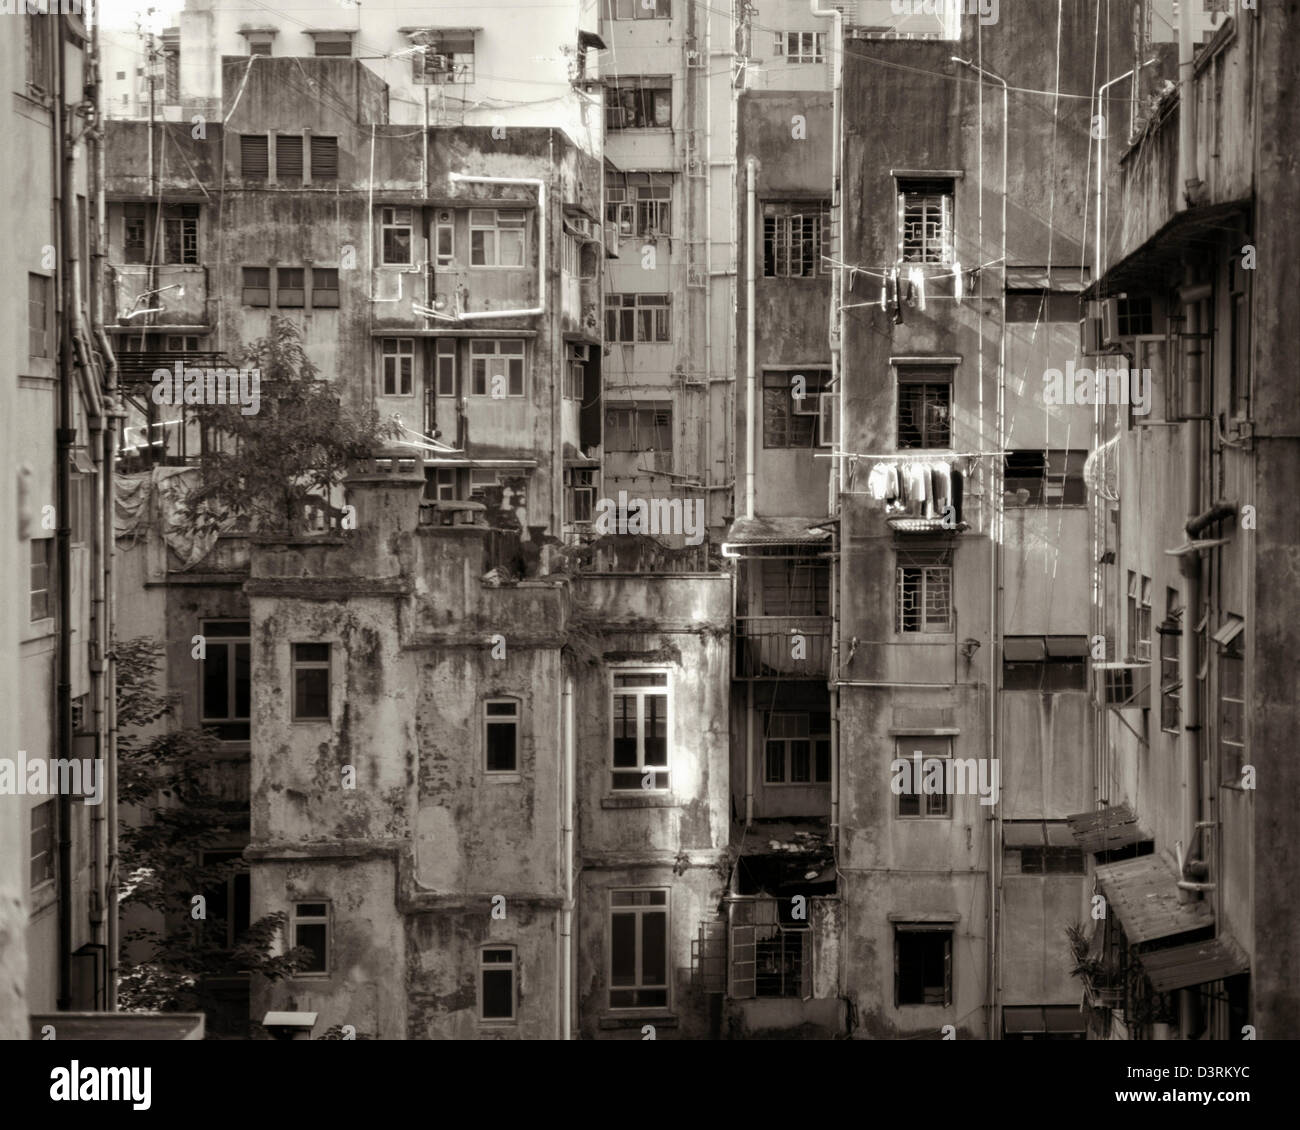 50's Housing in Central, Hong Kong - Stock Image